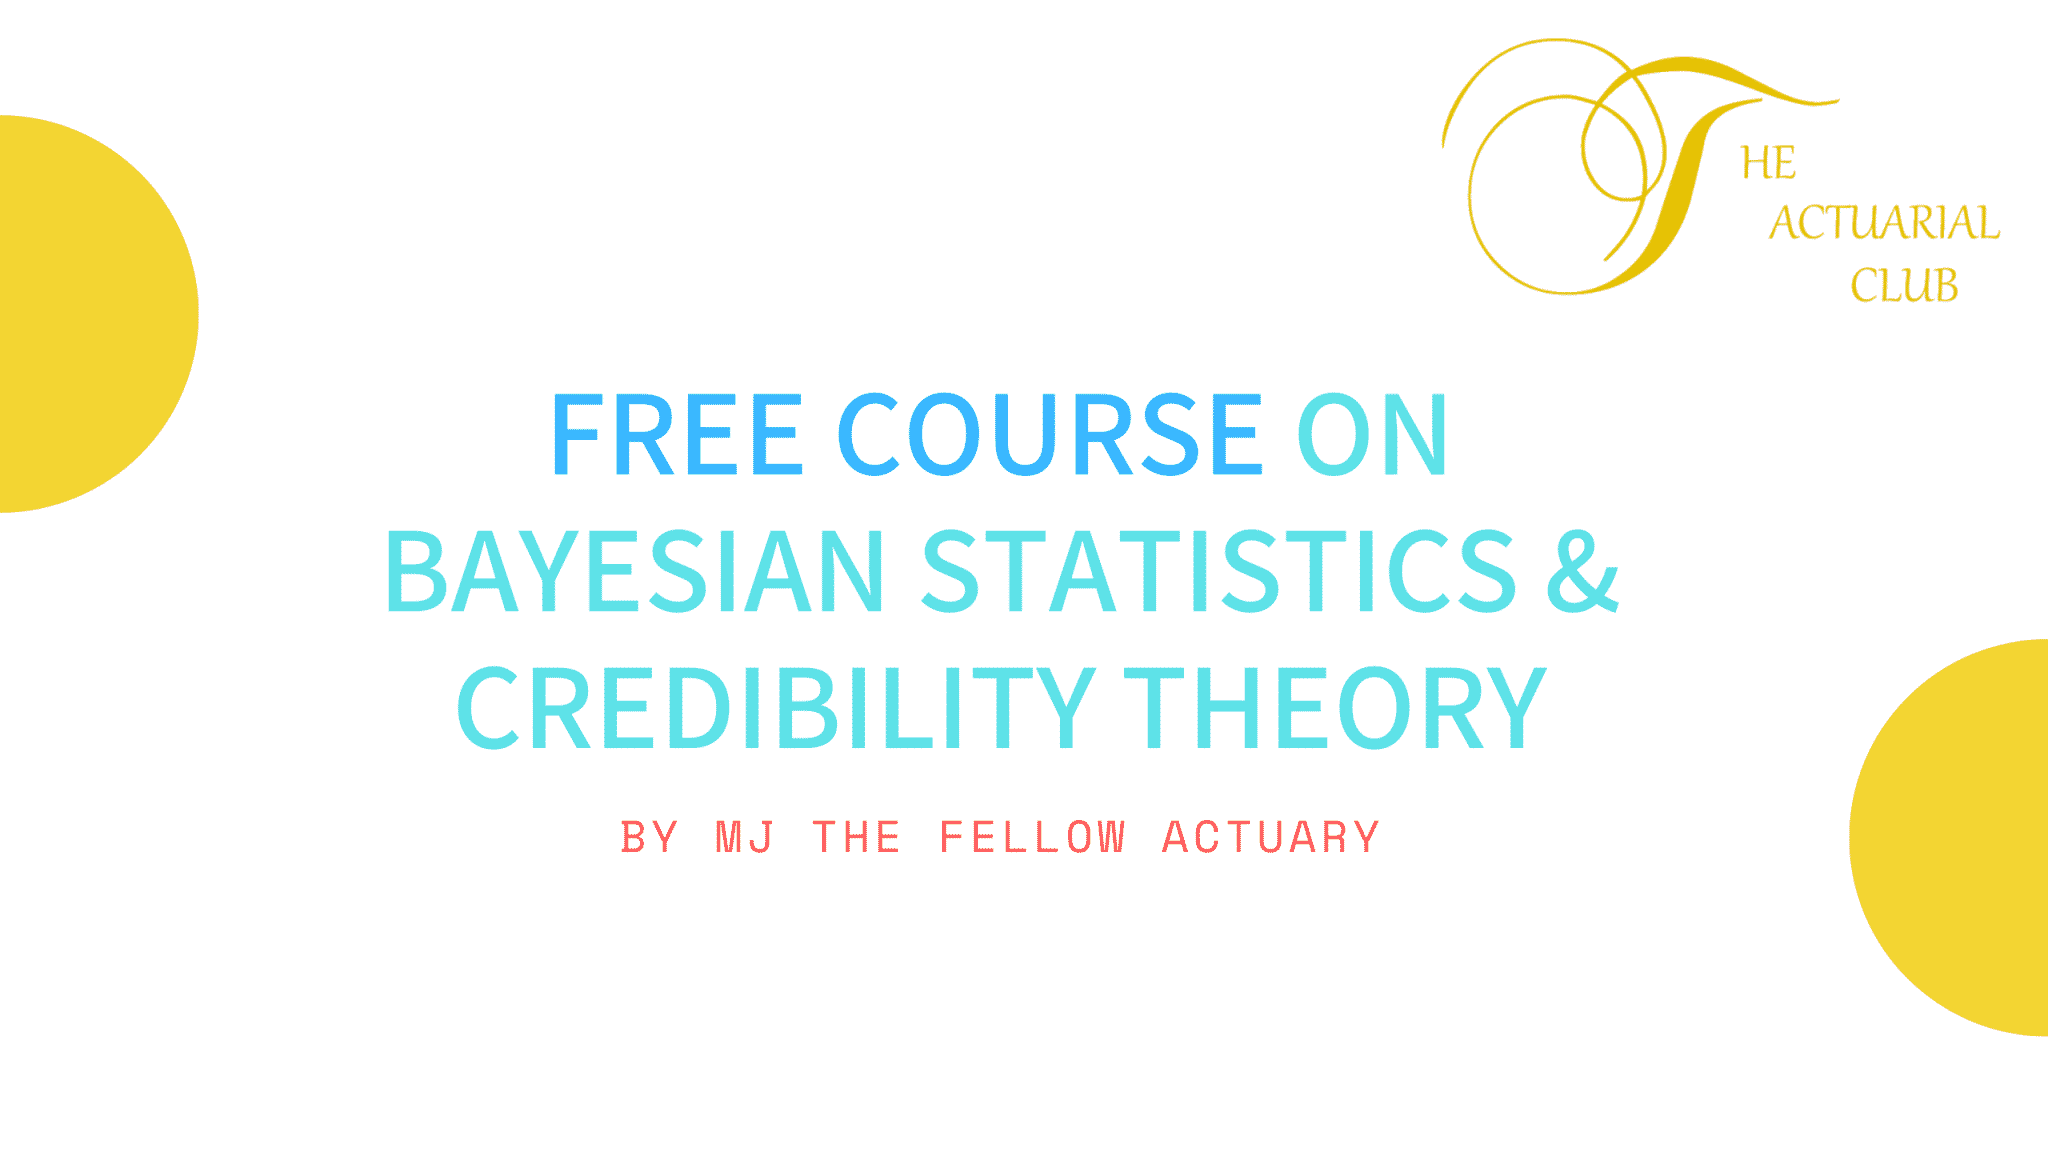 Free course on Bayesian Statistics and Credibility Theory by MJ